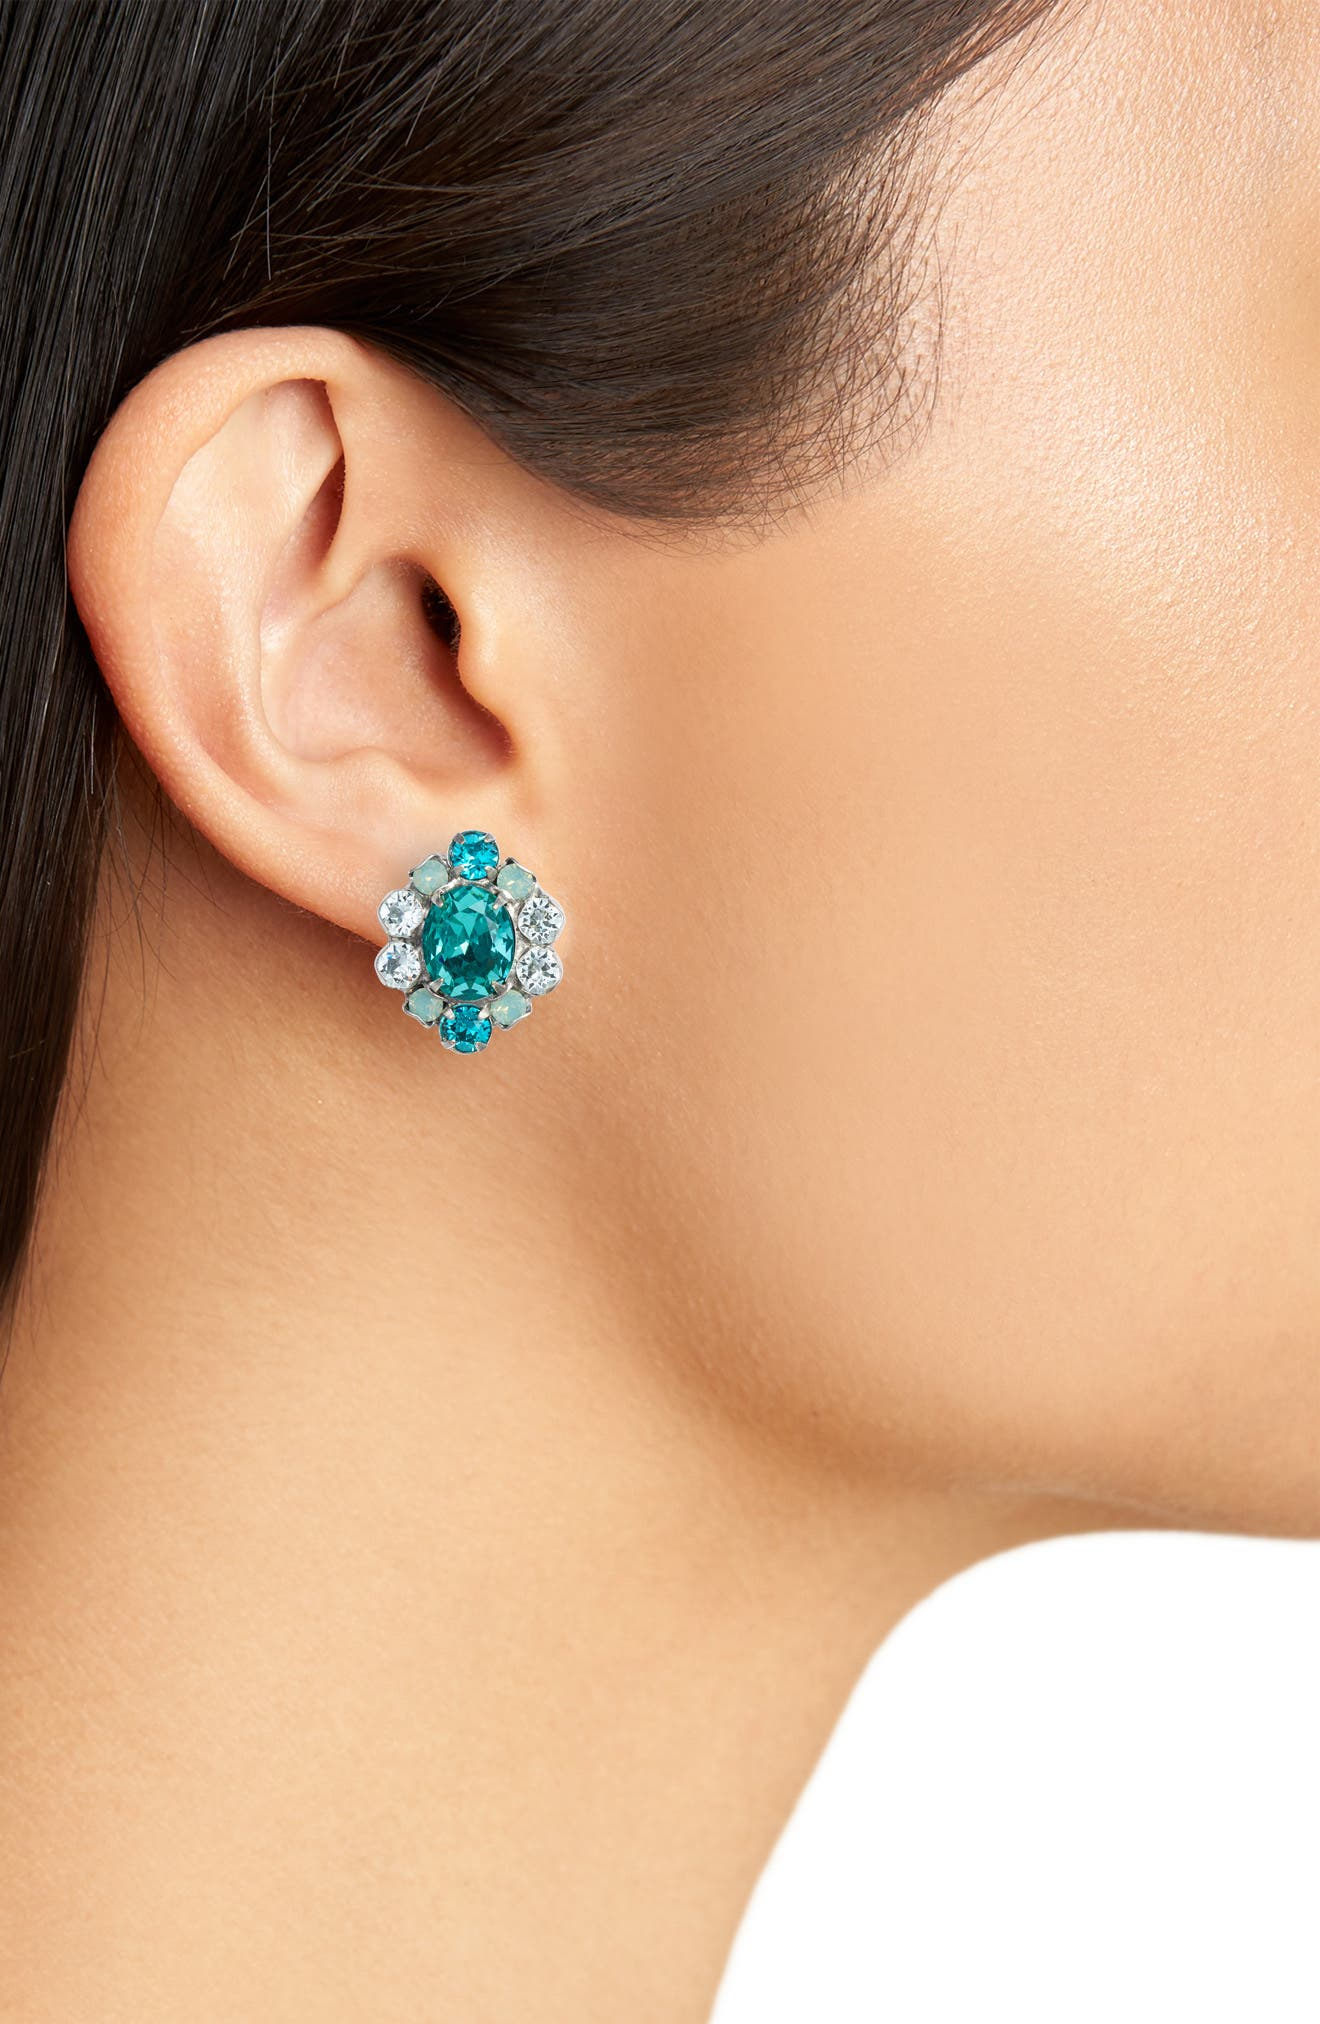 Sundrop Crystal Earrings,                             Alternate thumbnail 2, color,                             Blue-Green